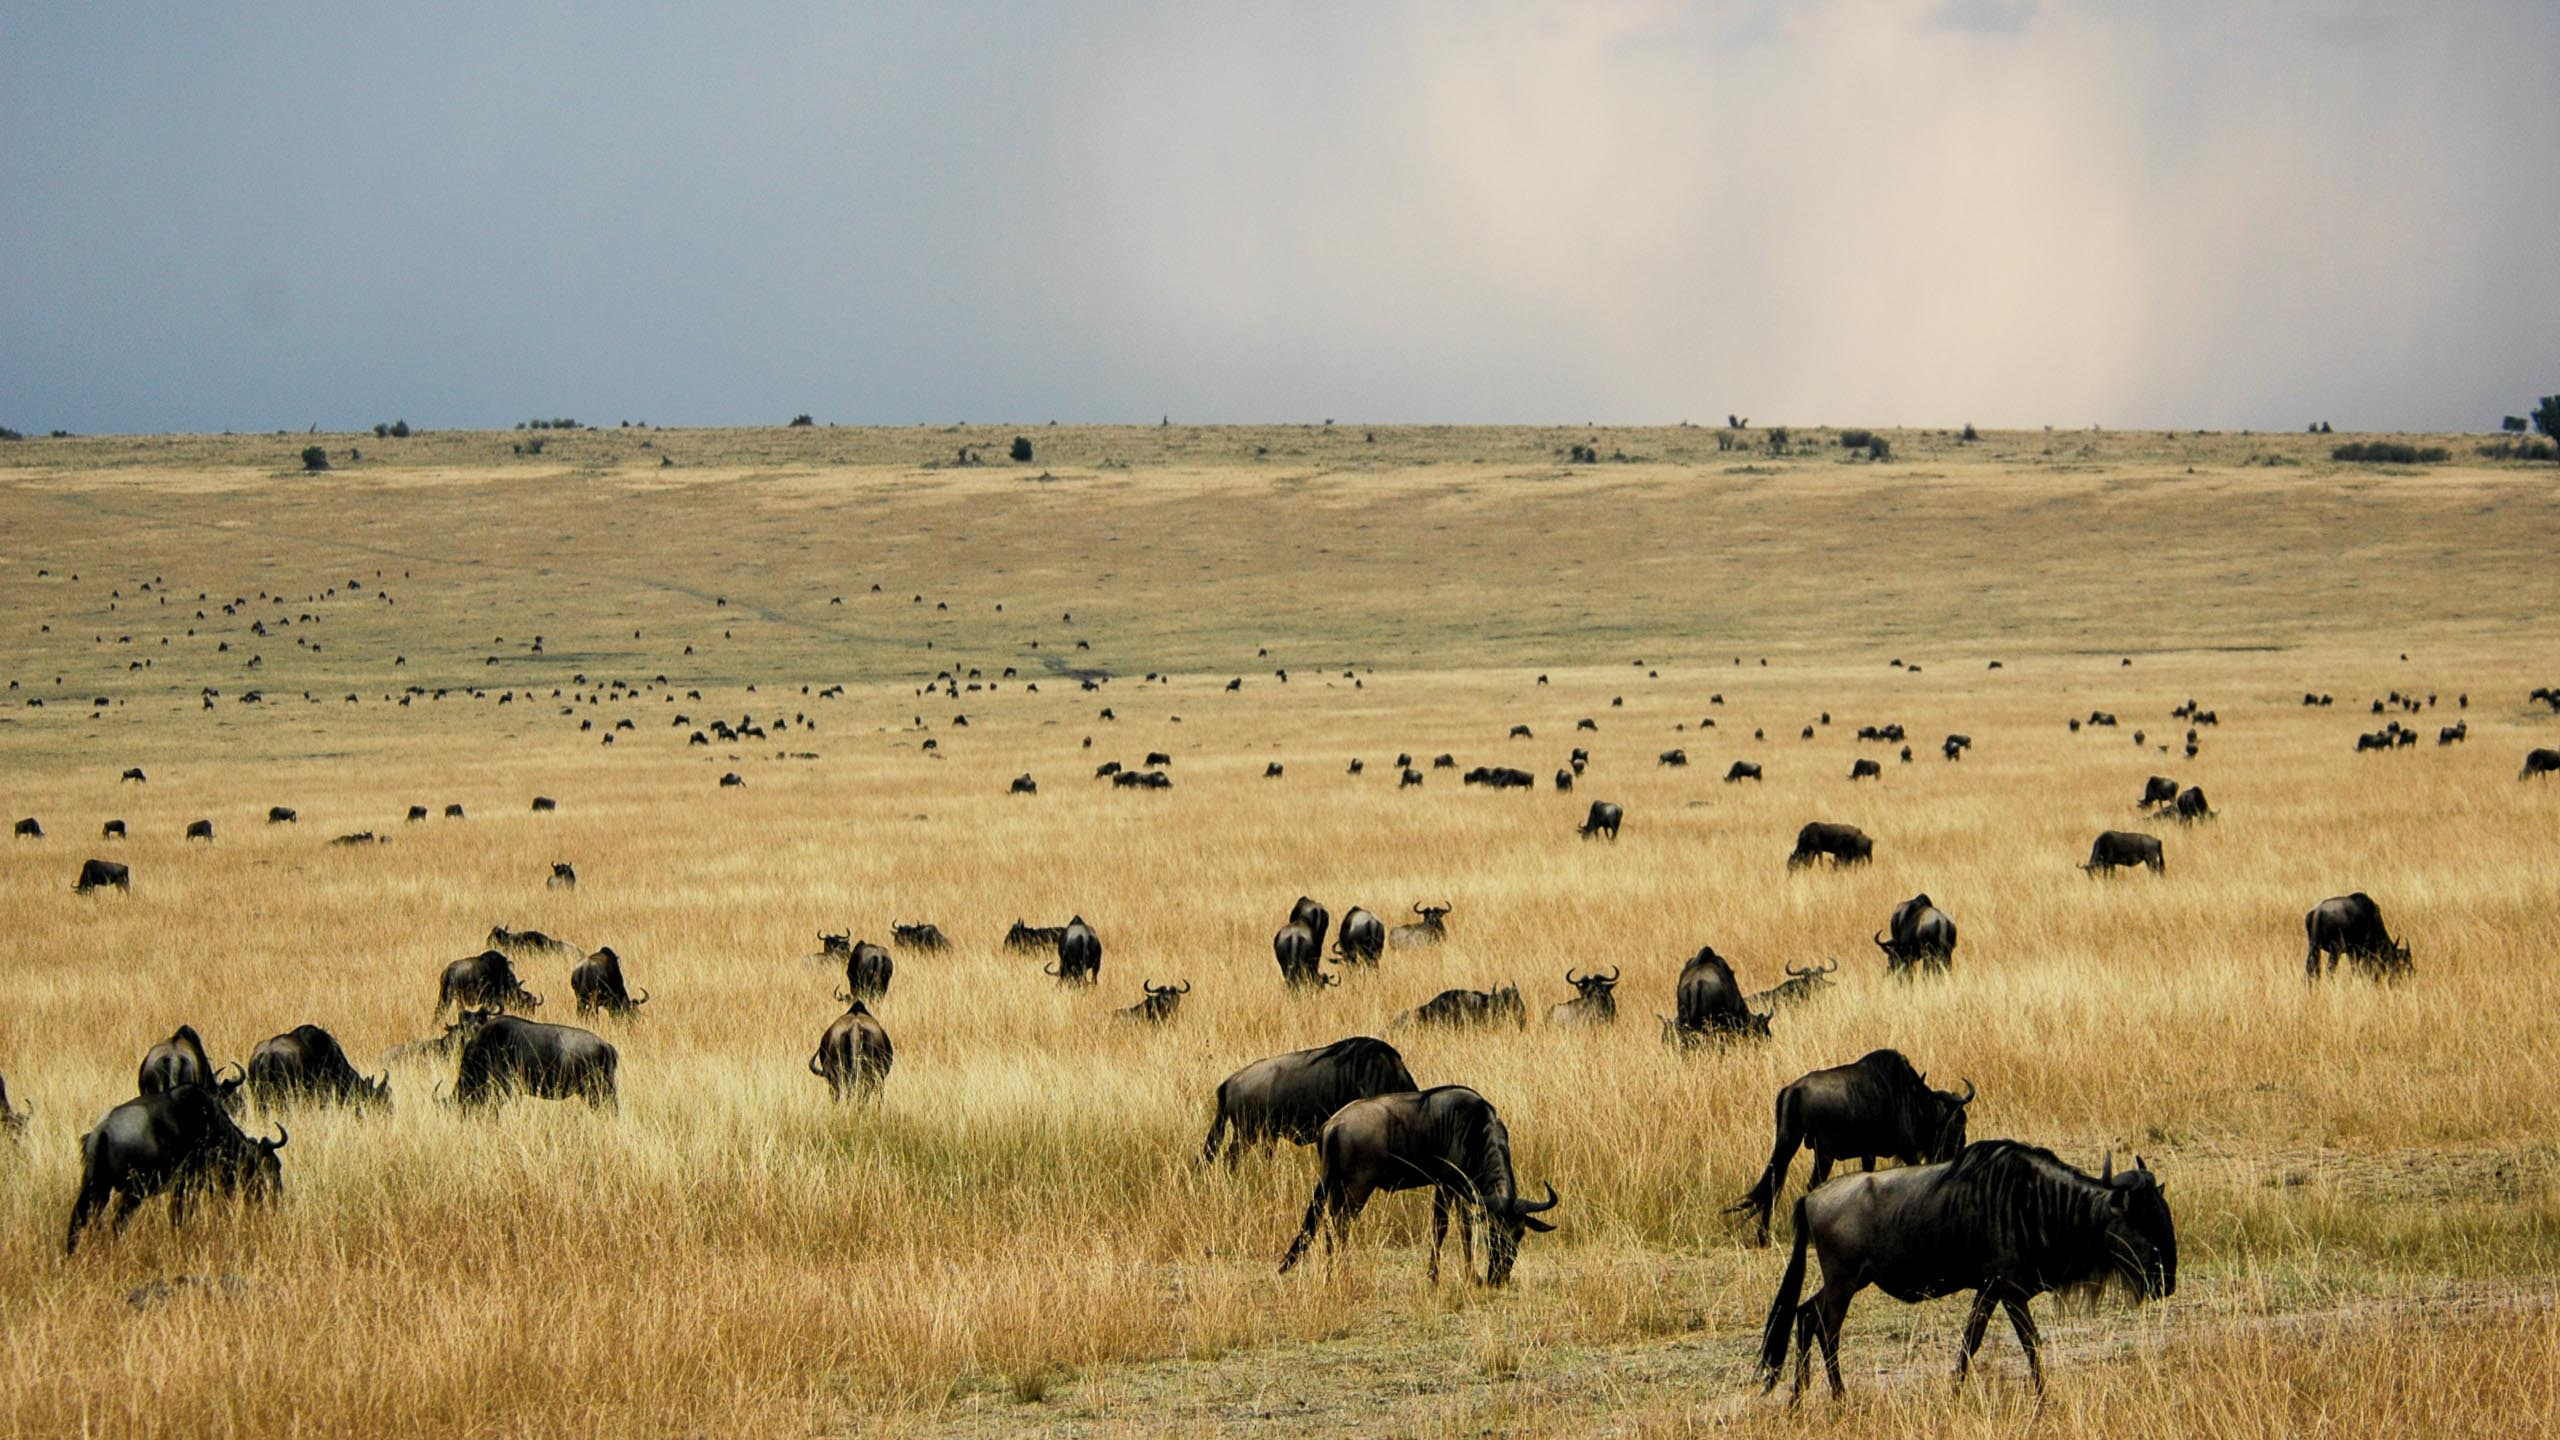 Herd of buffalo in Kenya